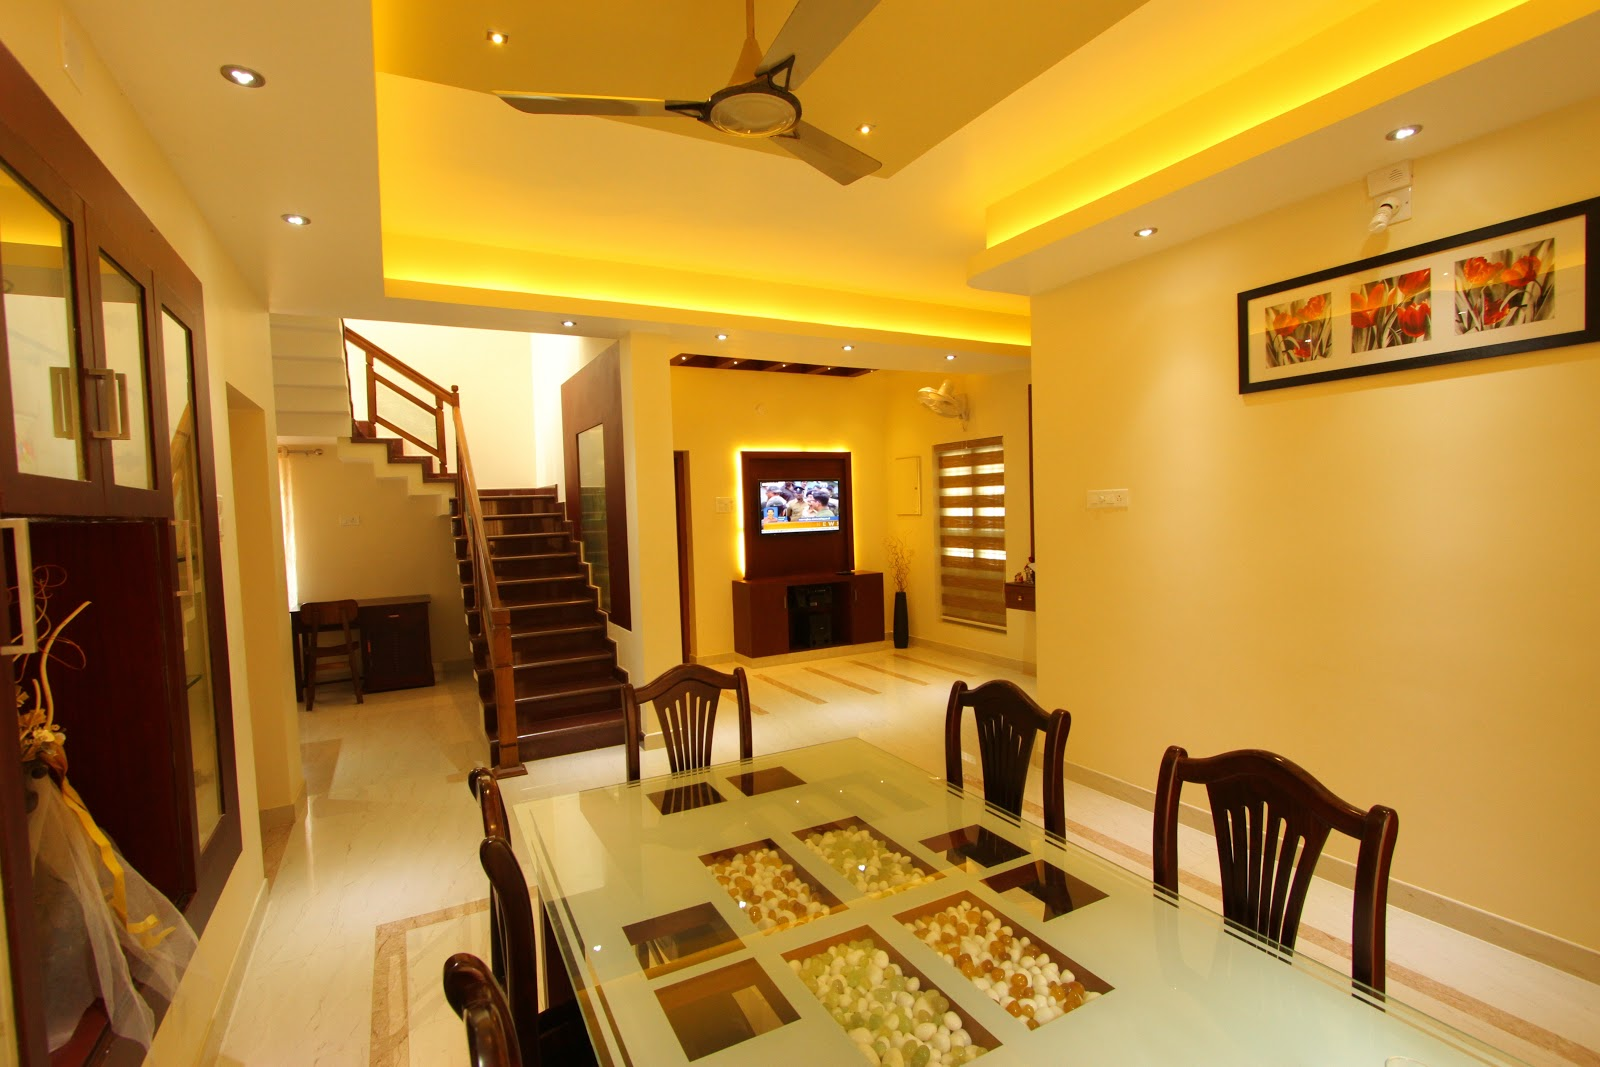 Shilpakala interiors award winning home interior design for Interior desinging